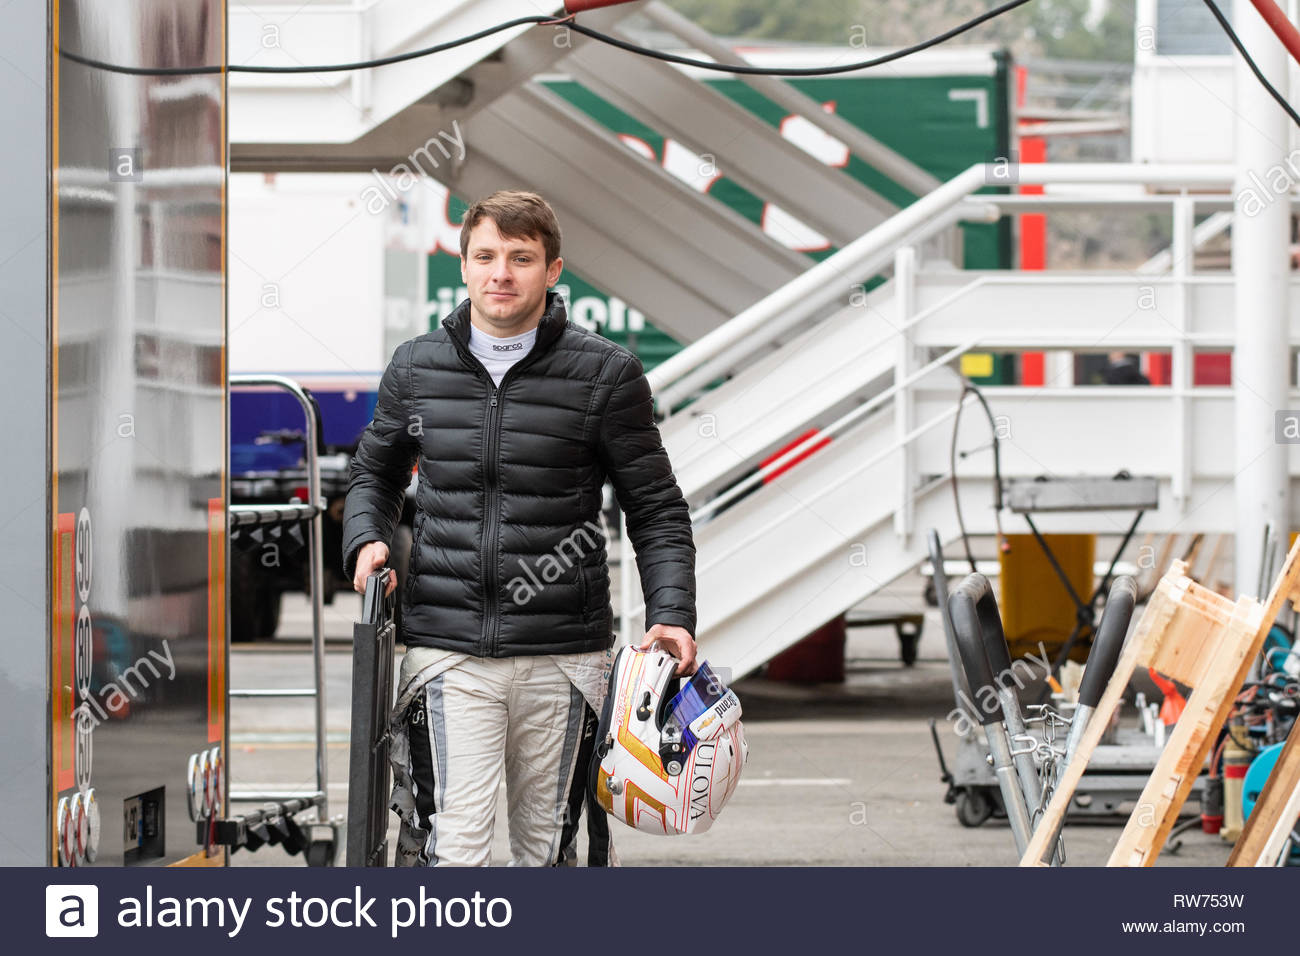 Barcelona, Spain. March 5th, 2019 -  Racing driver Jordan King from Great Britain with 16 MP Motorsport - during day 1 of Fia Formula Two 2019 Pre-Season Test at Circuit de Catalunya. Credit: Kristin Greenwood/Alamy Live News - Stock Image